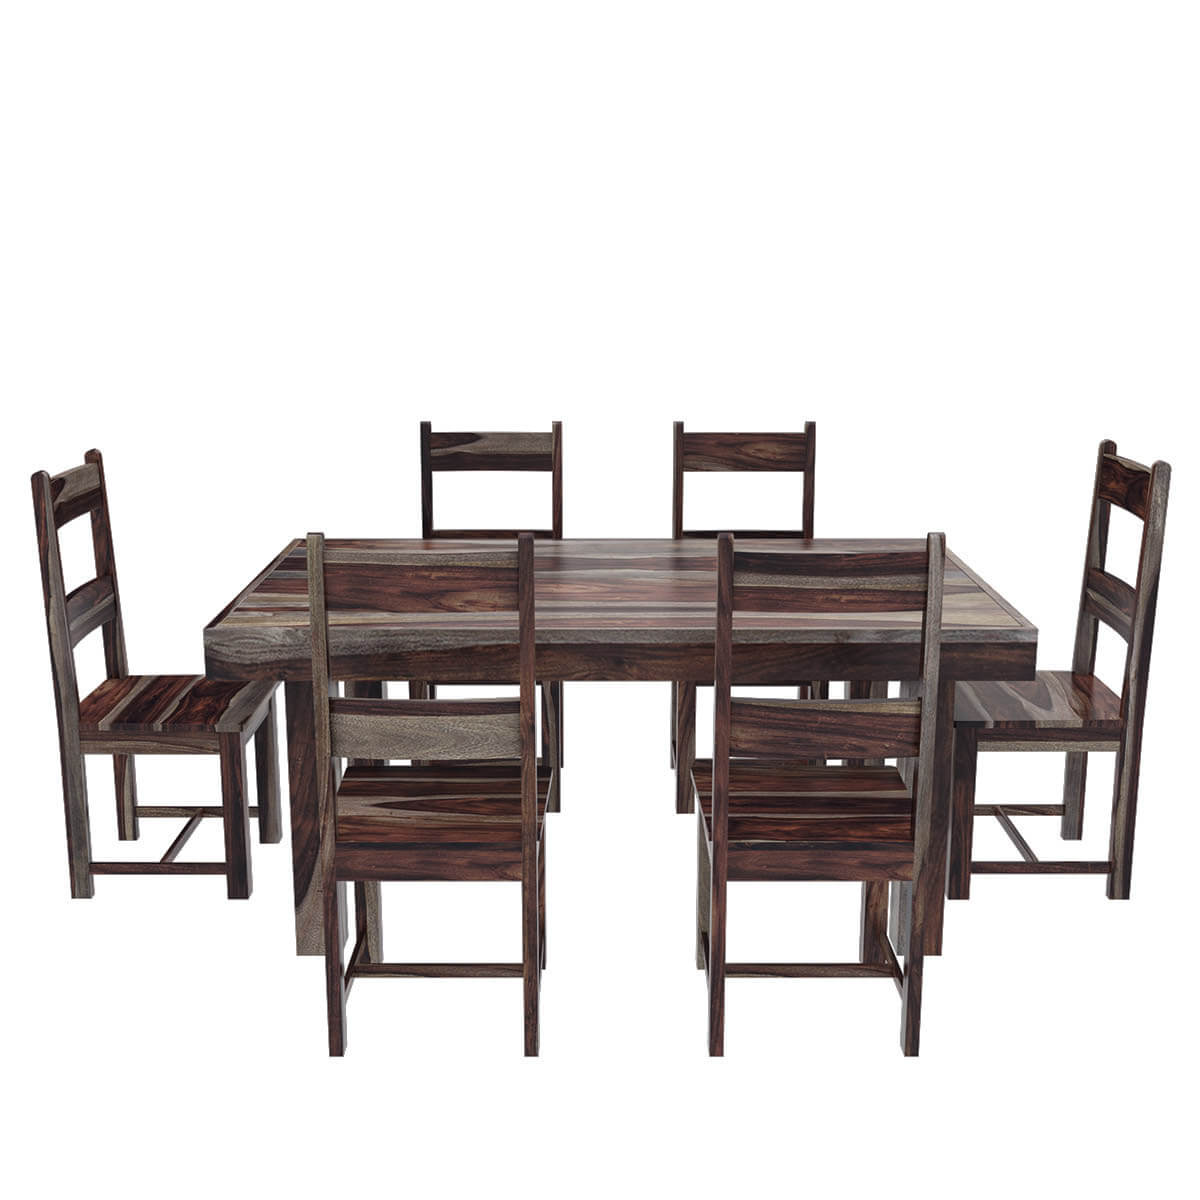 Frisco modern solid wood casual rustic dining room table for Casual dining room tables